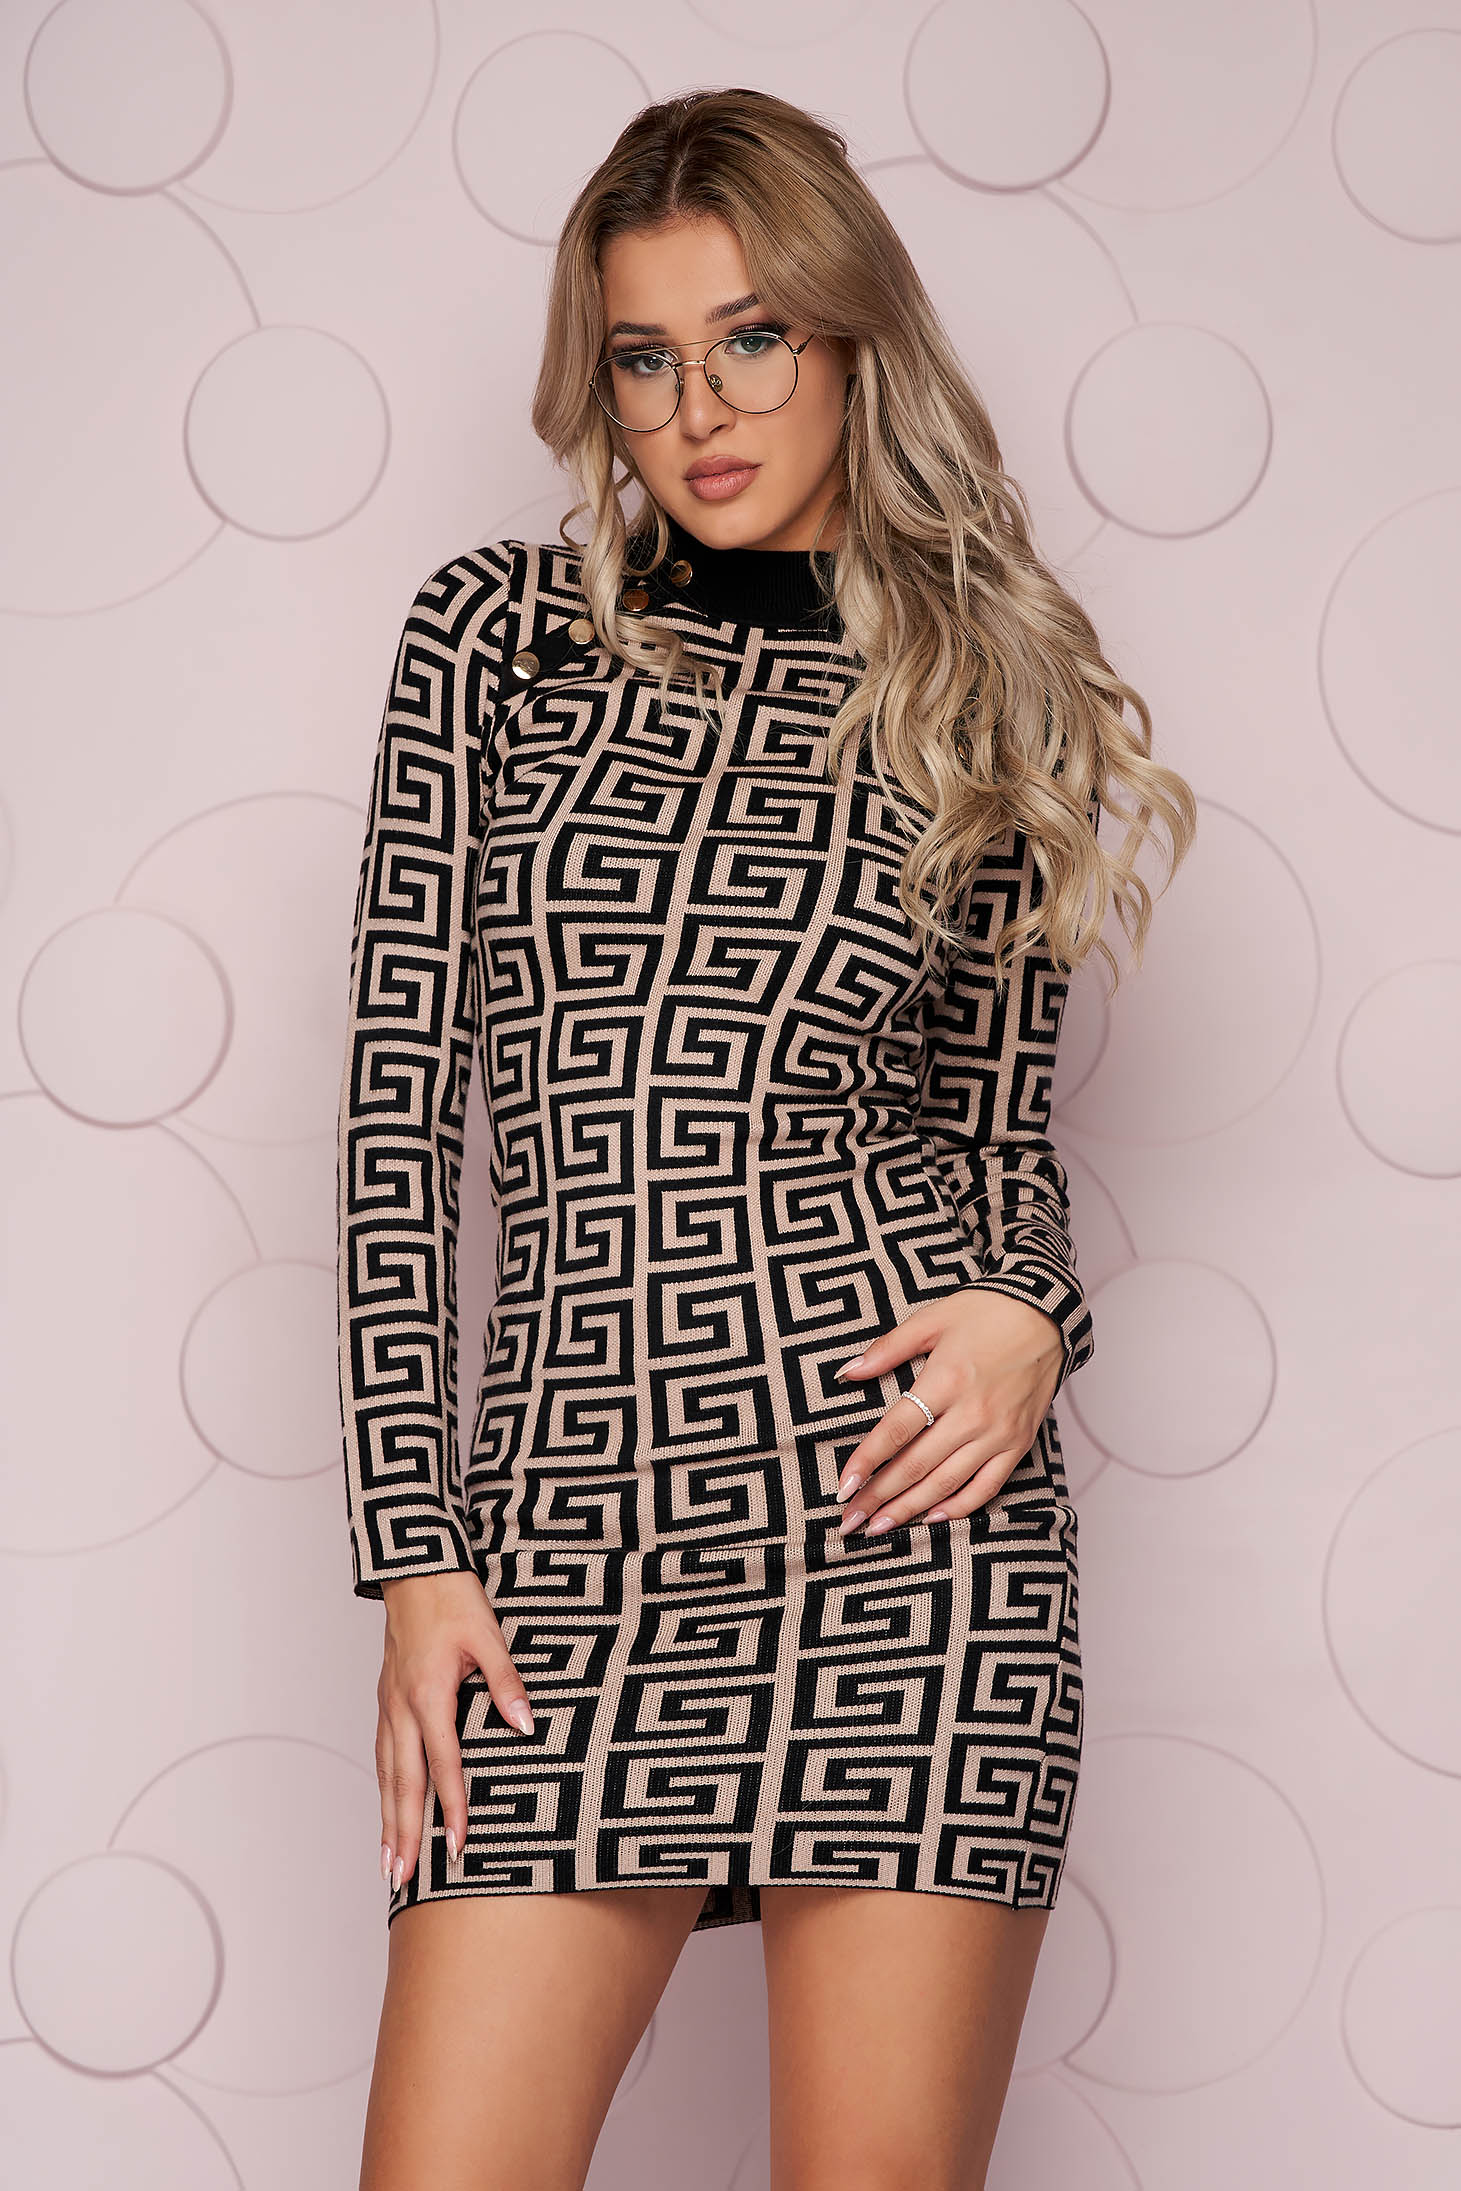 Brown dress thin fabric short cut knitted fabric from elastic fabric with button accessories with tented cut